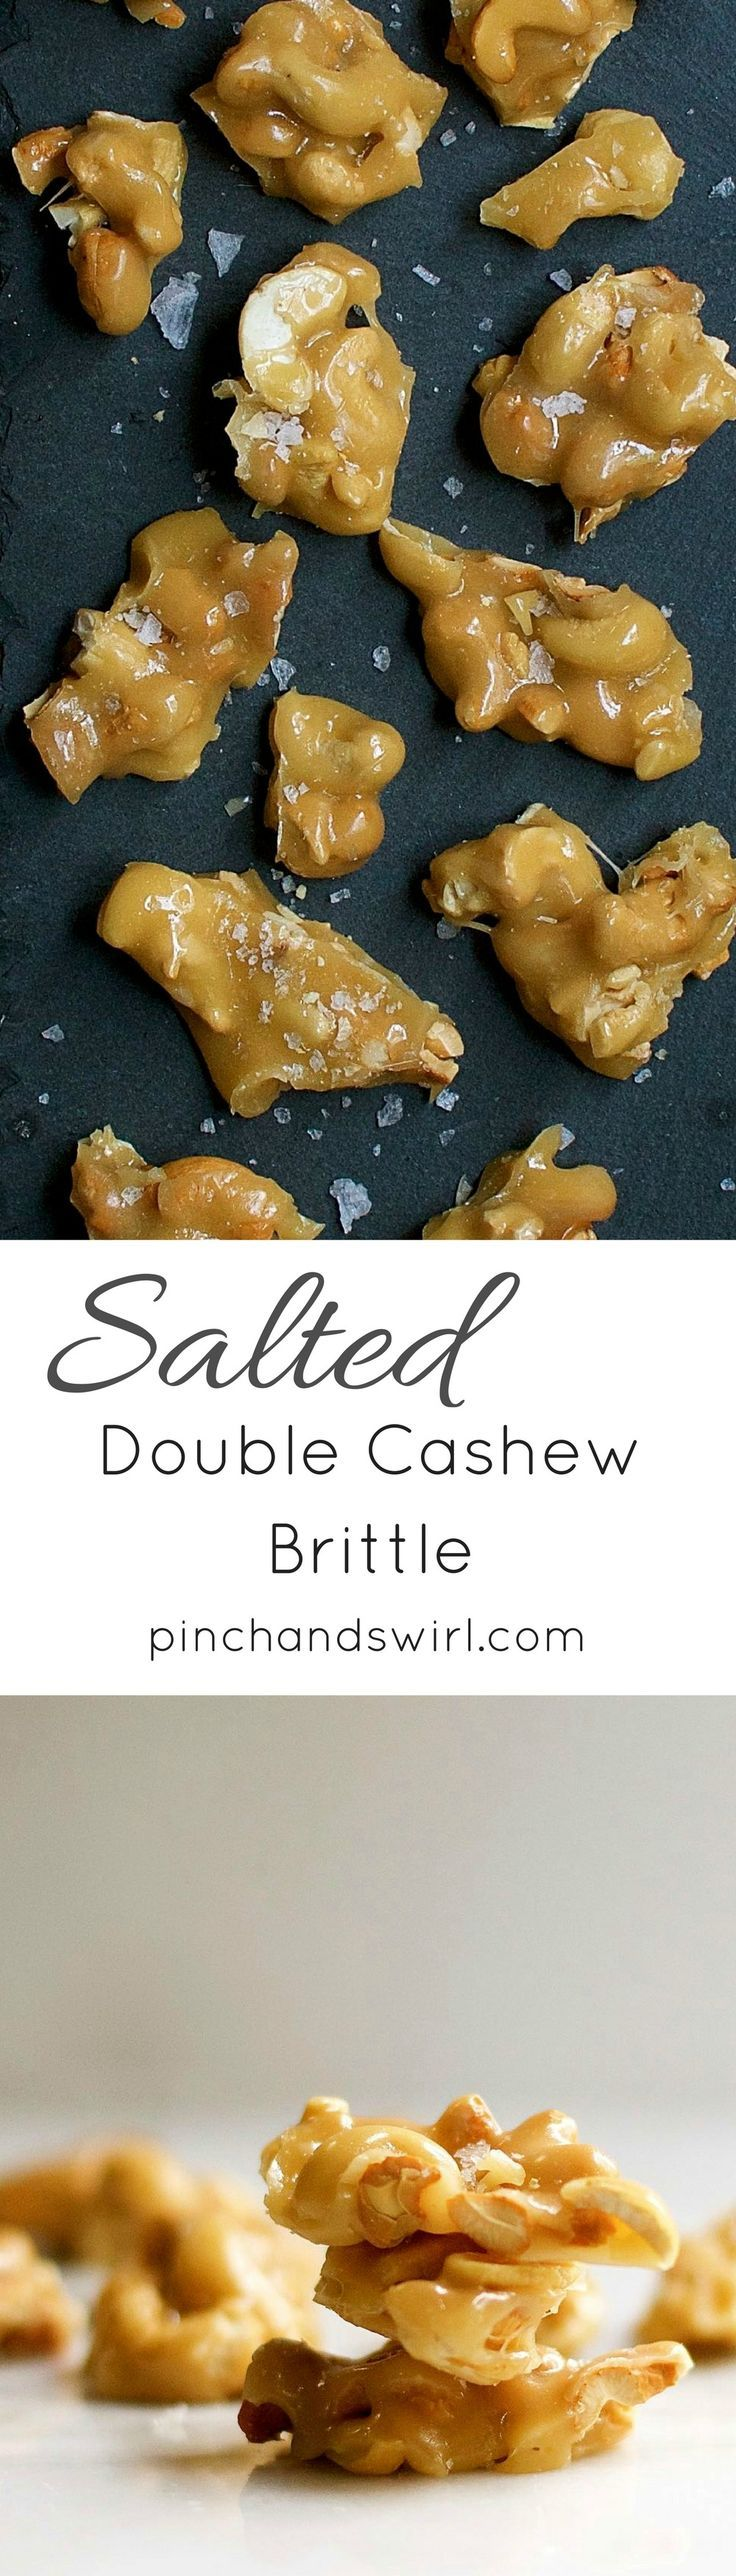 Easy Salted Double Cashew Brittle - this nut brittle recipe is so delicious and such a great edible gift idea!